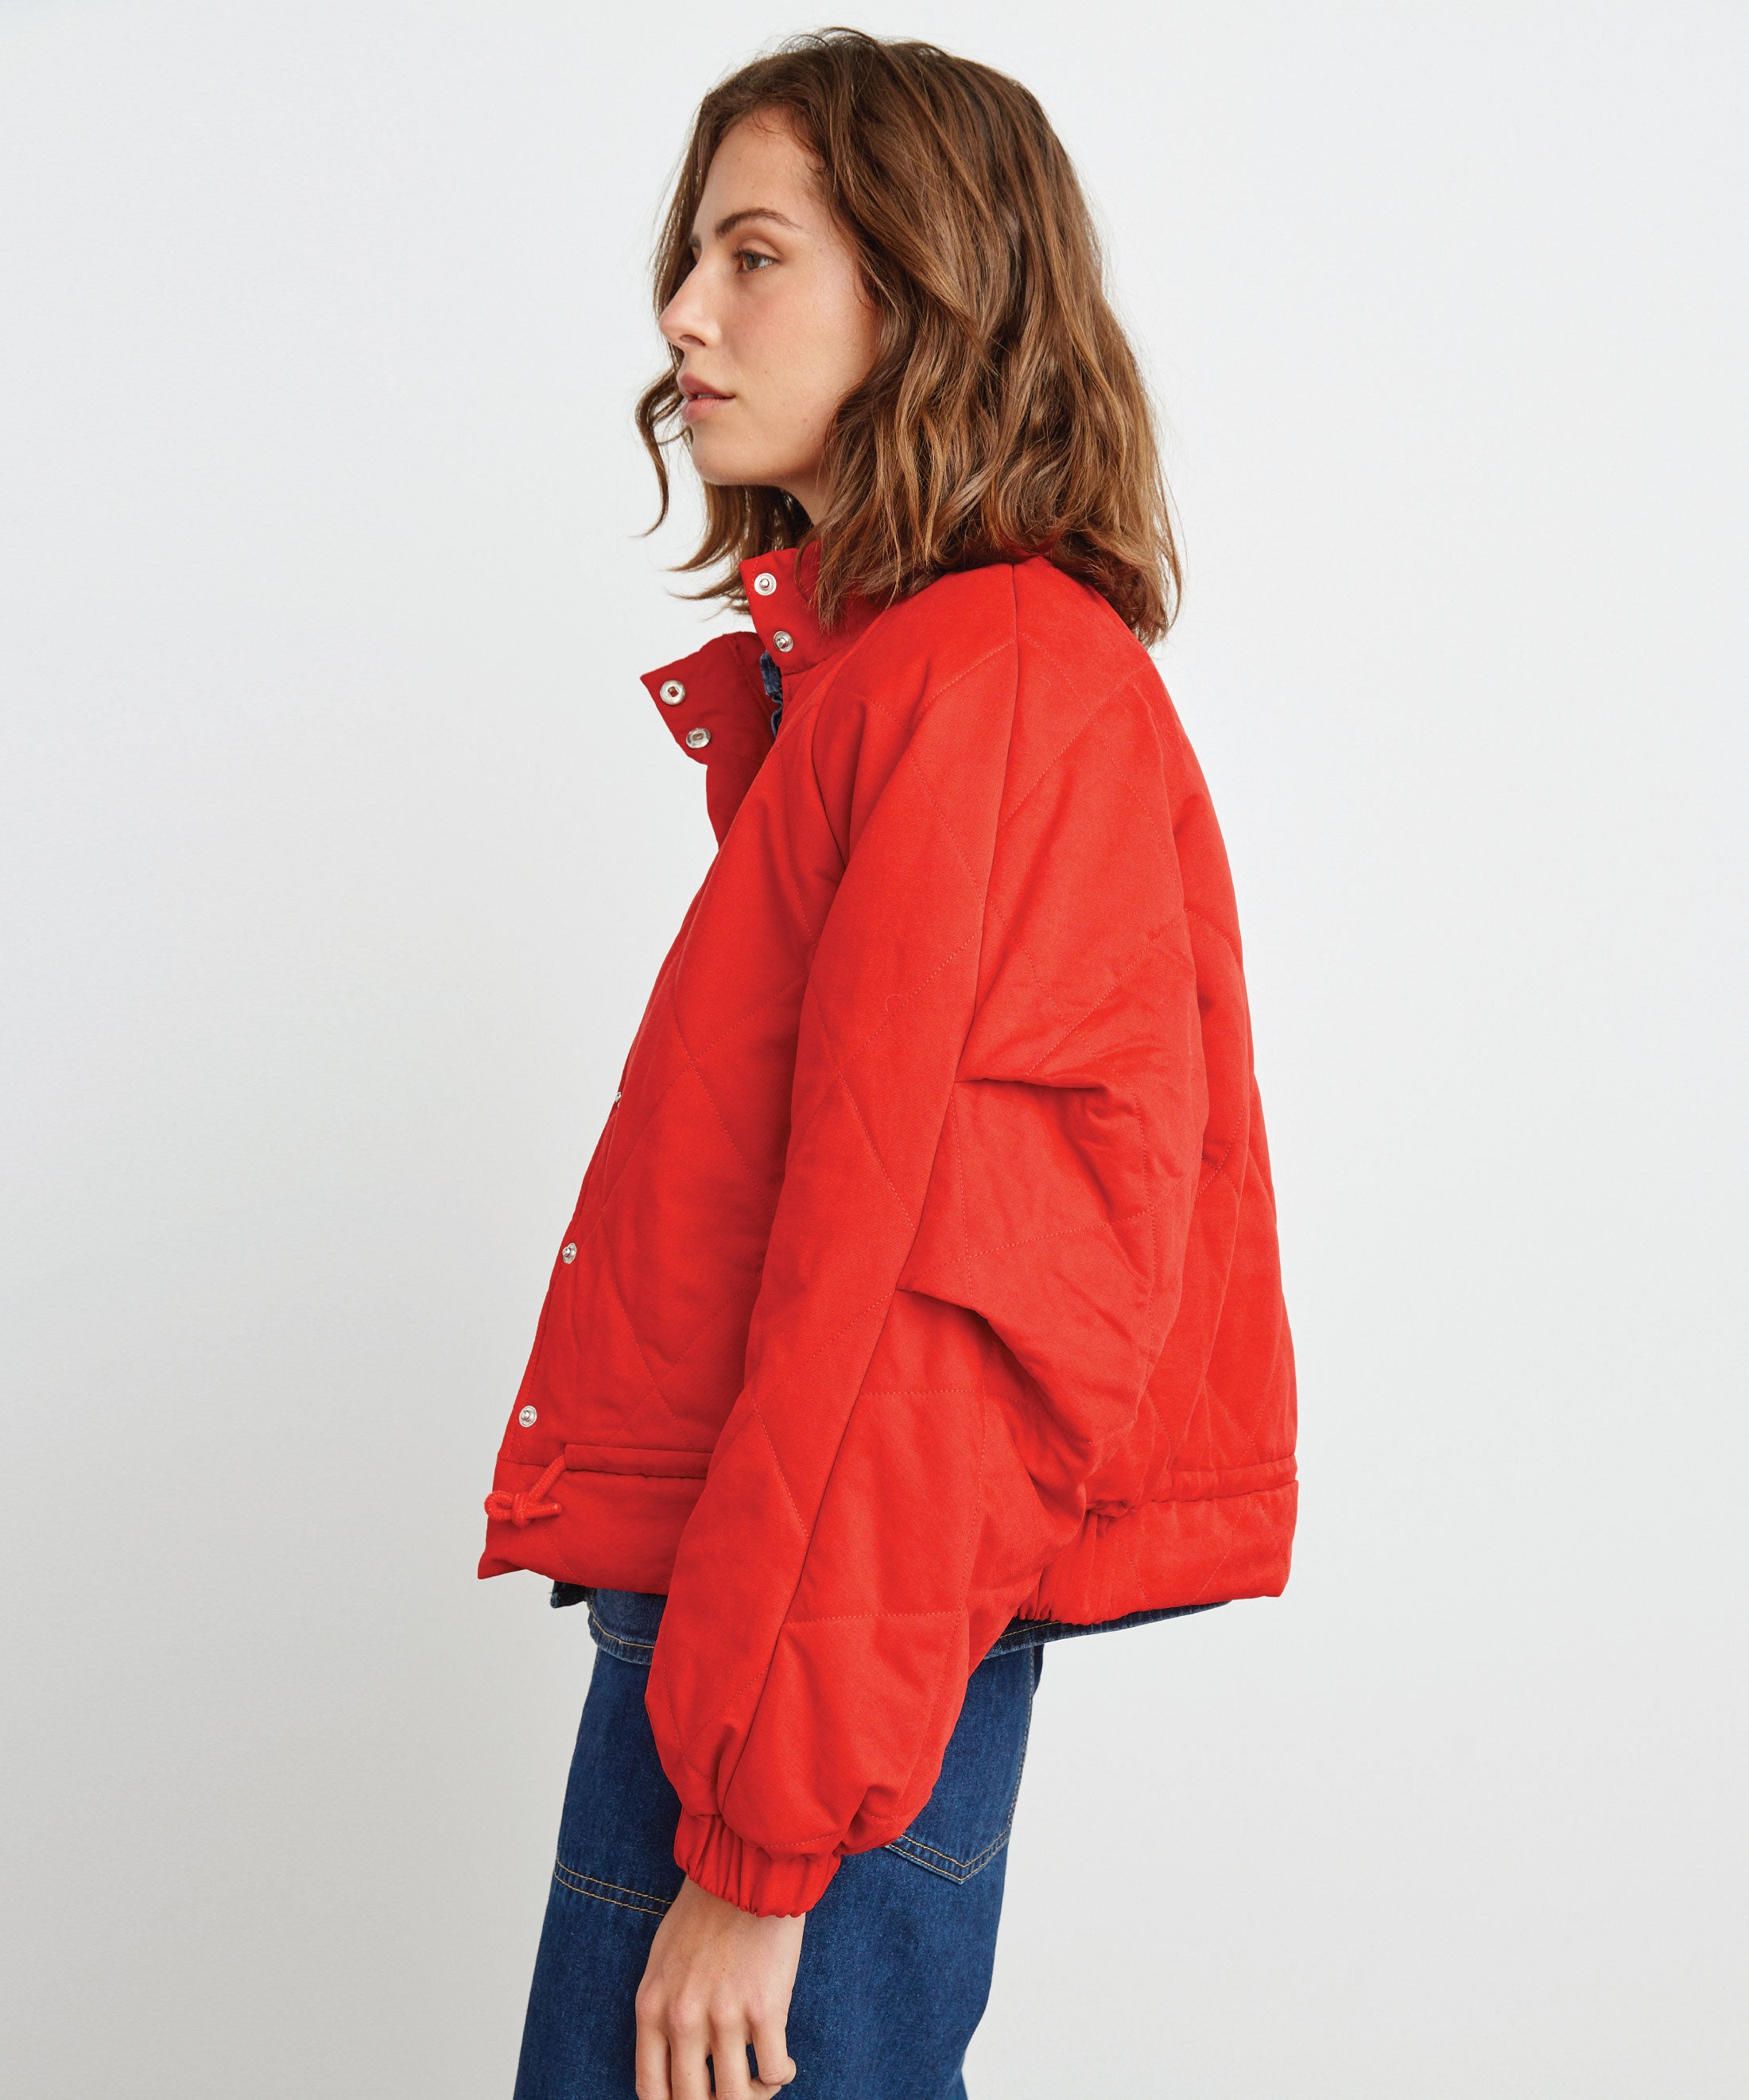 Morrison | Cody Jacket - Red